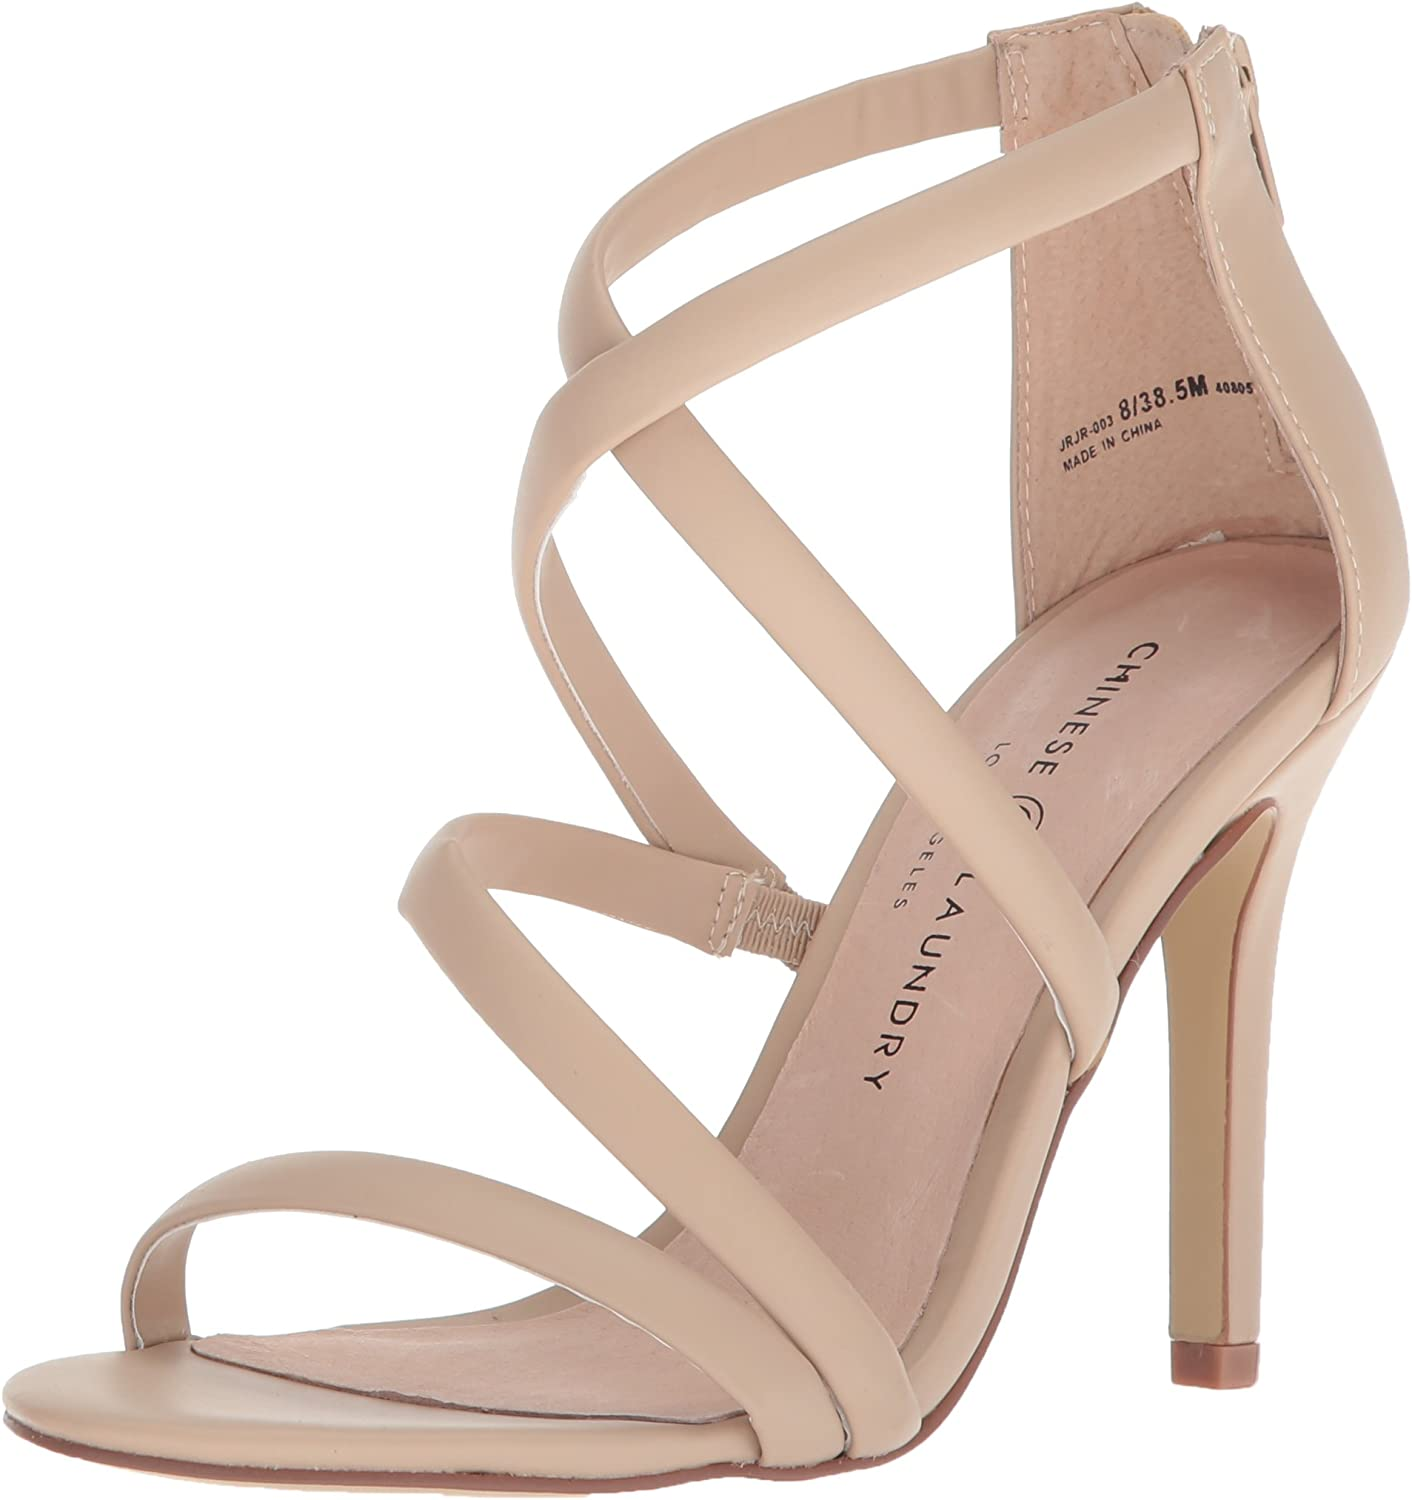 Chinese Laundry Womens Jillian Open Toe Casual Strappy Sandals